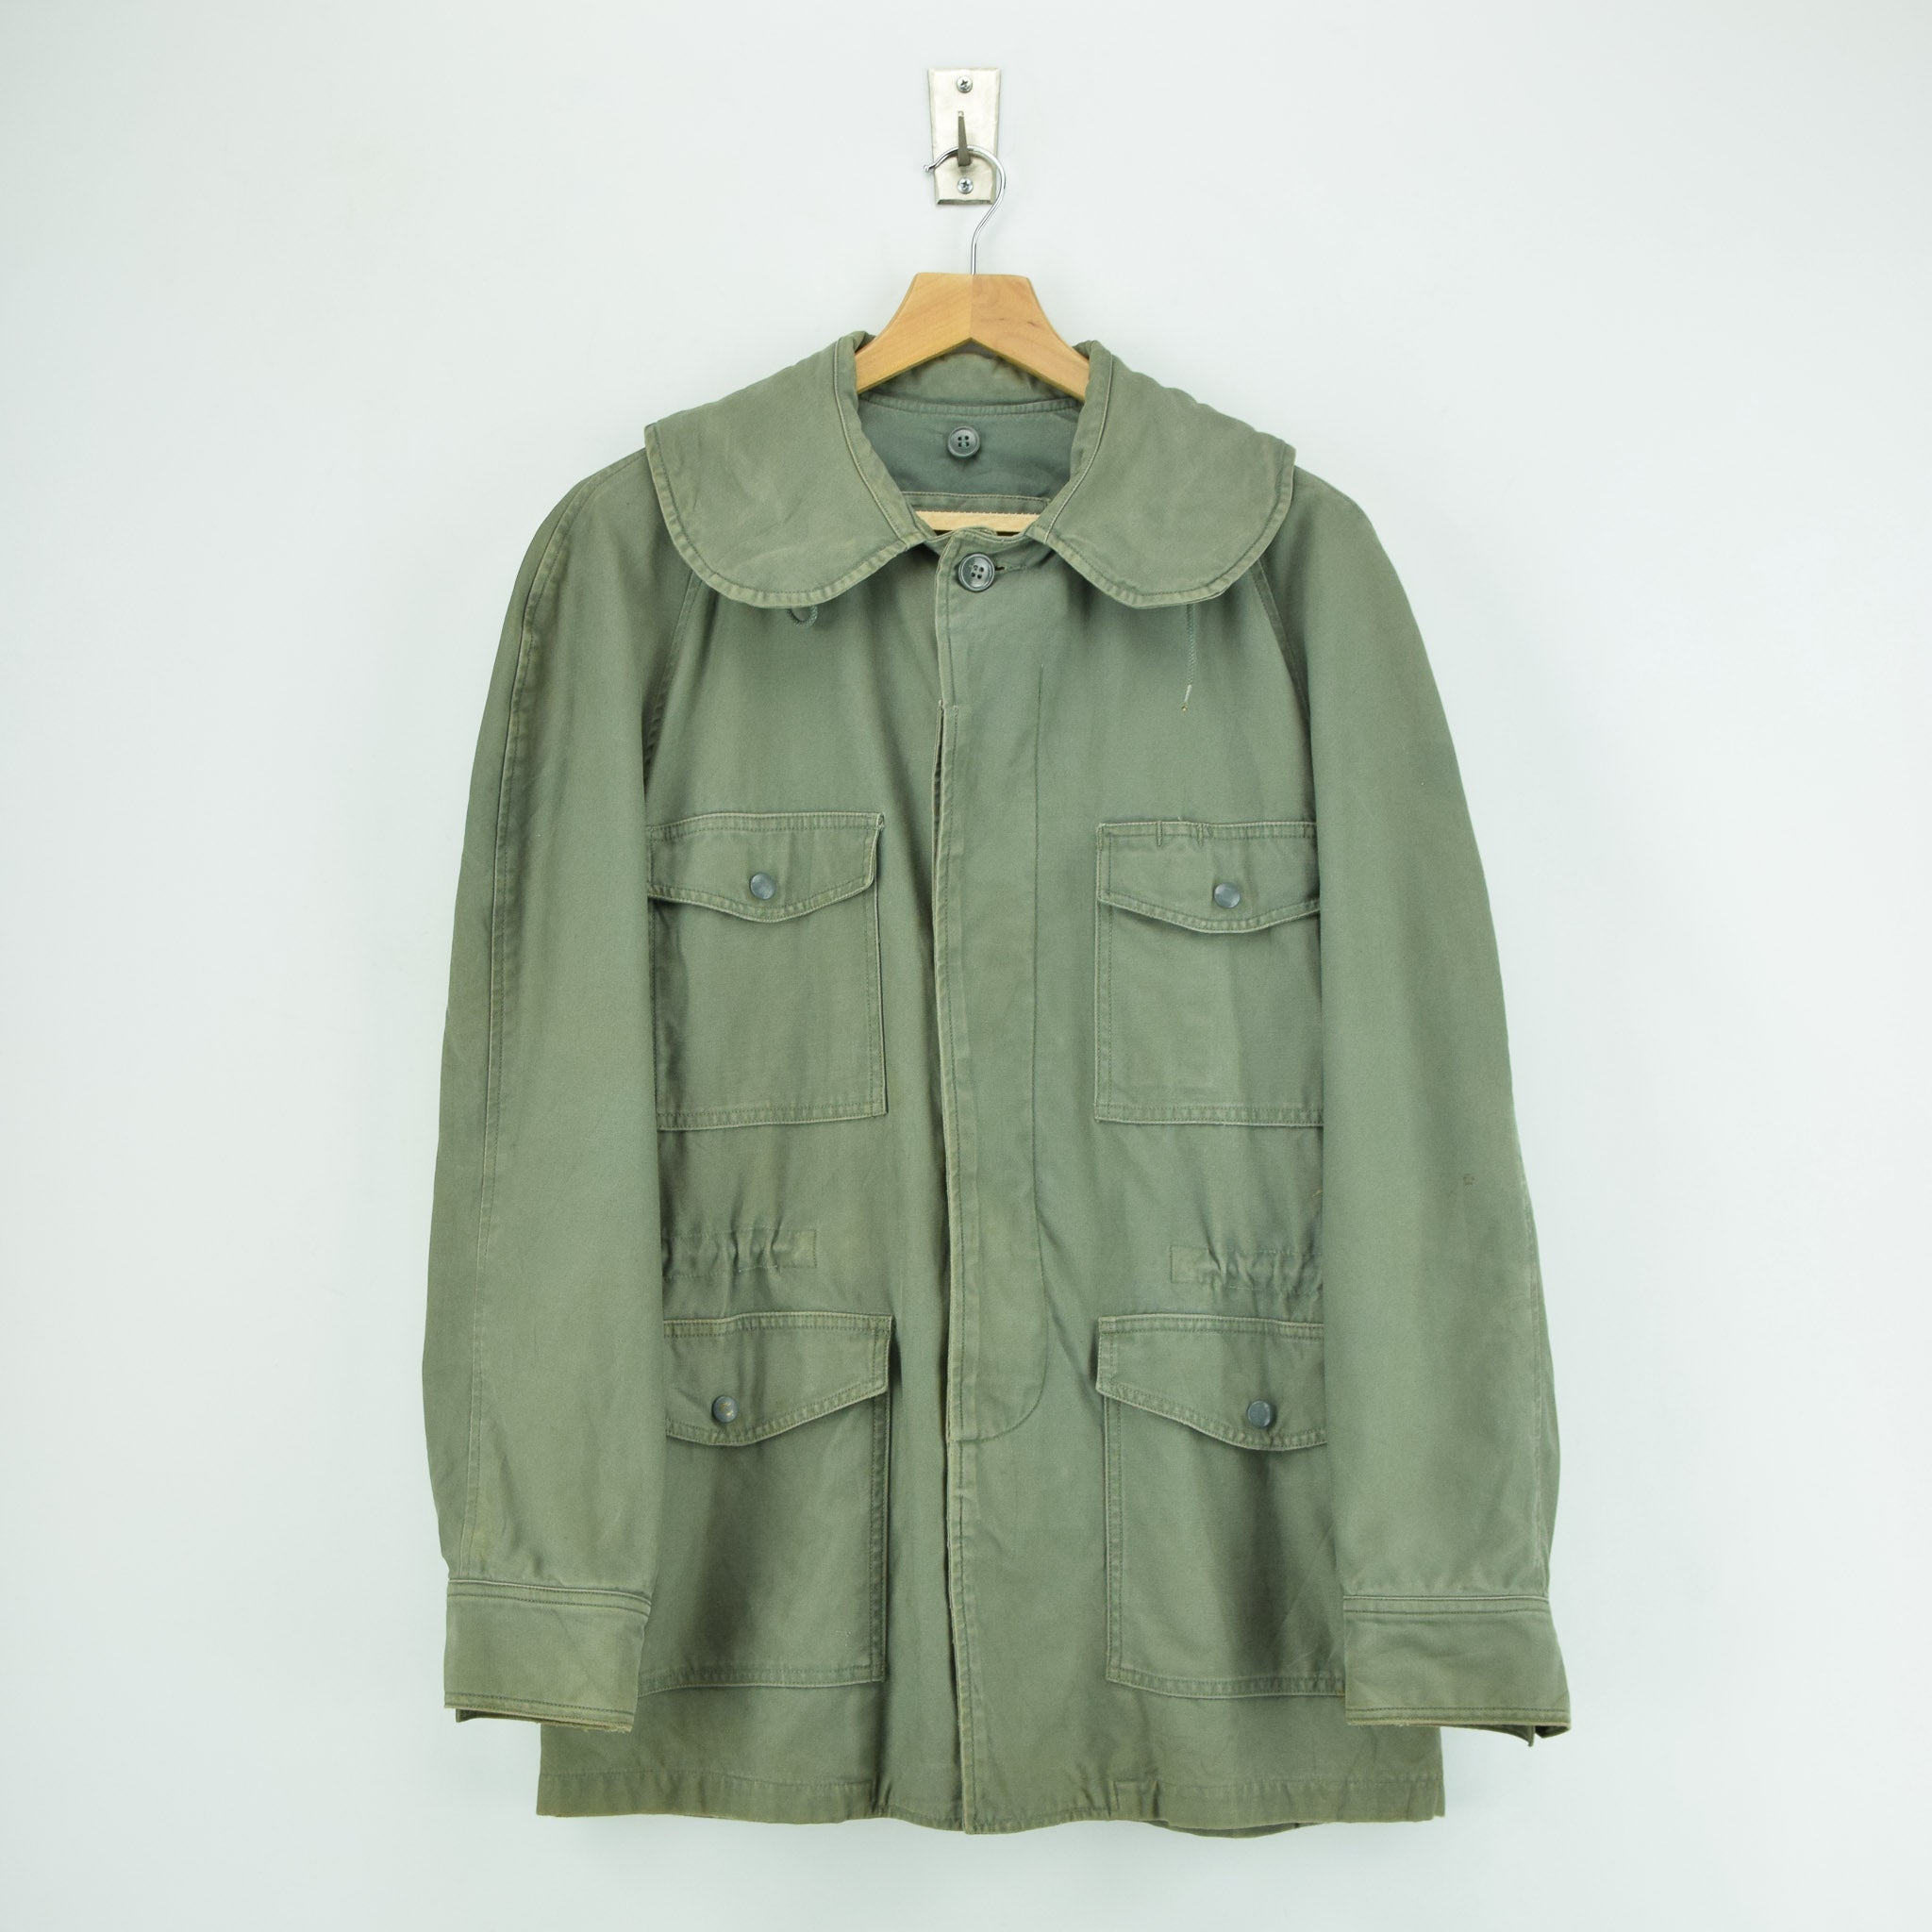 Vintage 60s Vietnam War US Air Force Field Jacket Olive Green USAF M front